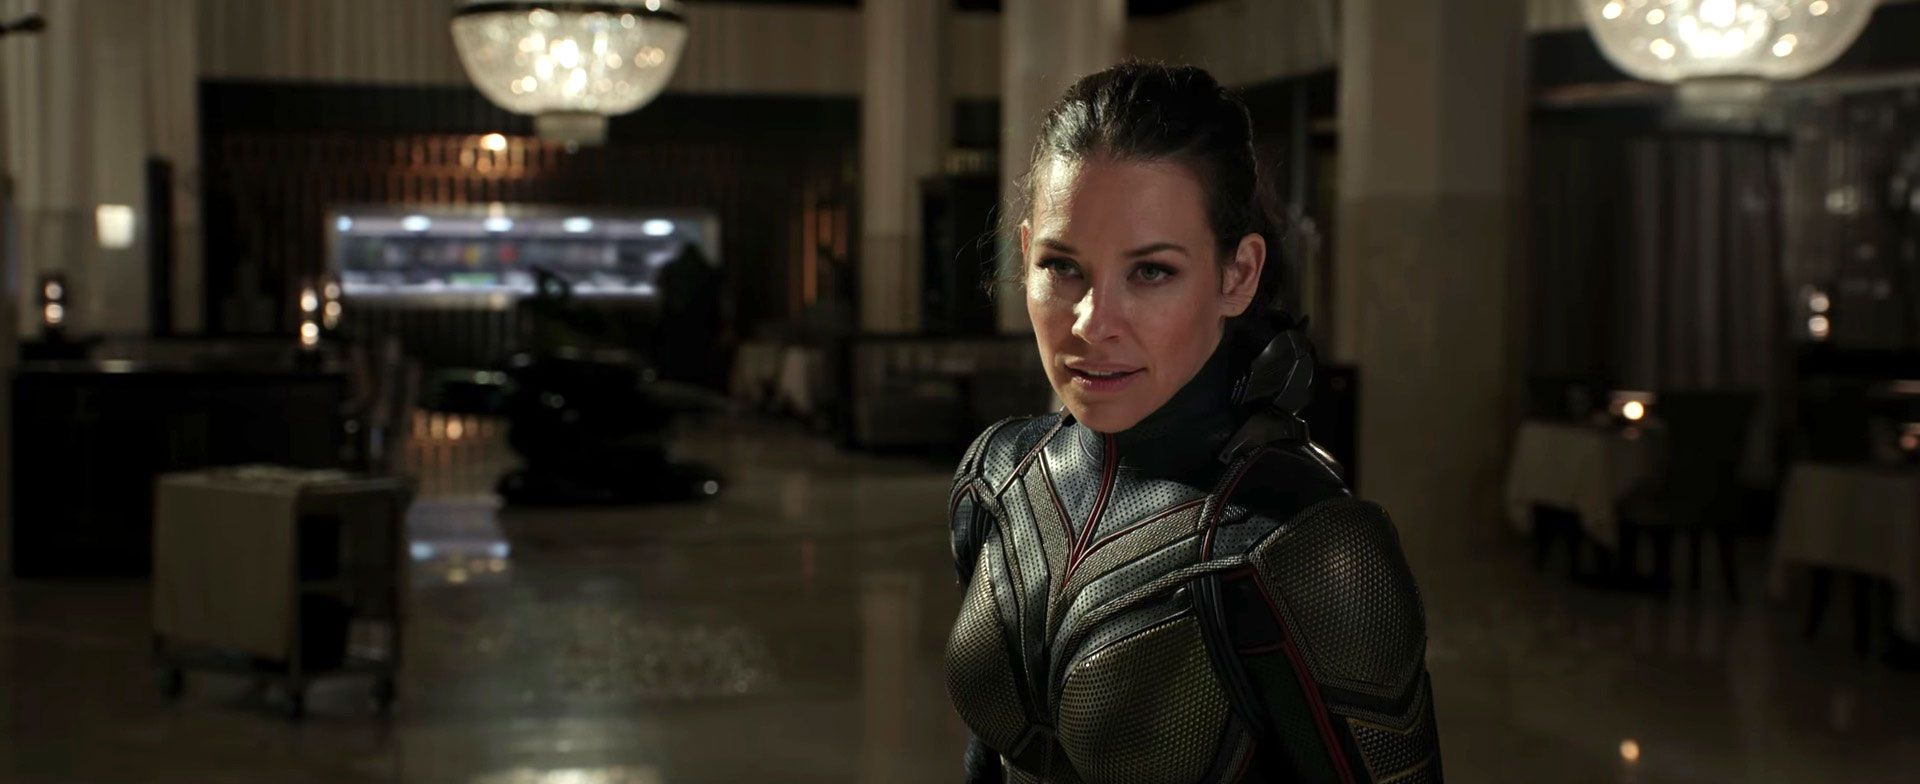 Ant-Man and the Wasp trailer 1 - Watch now